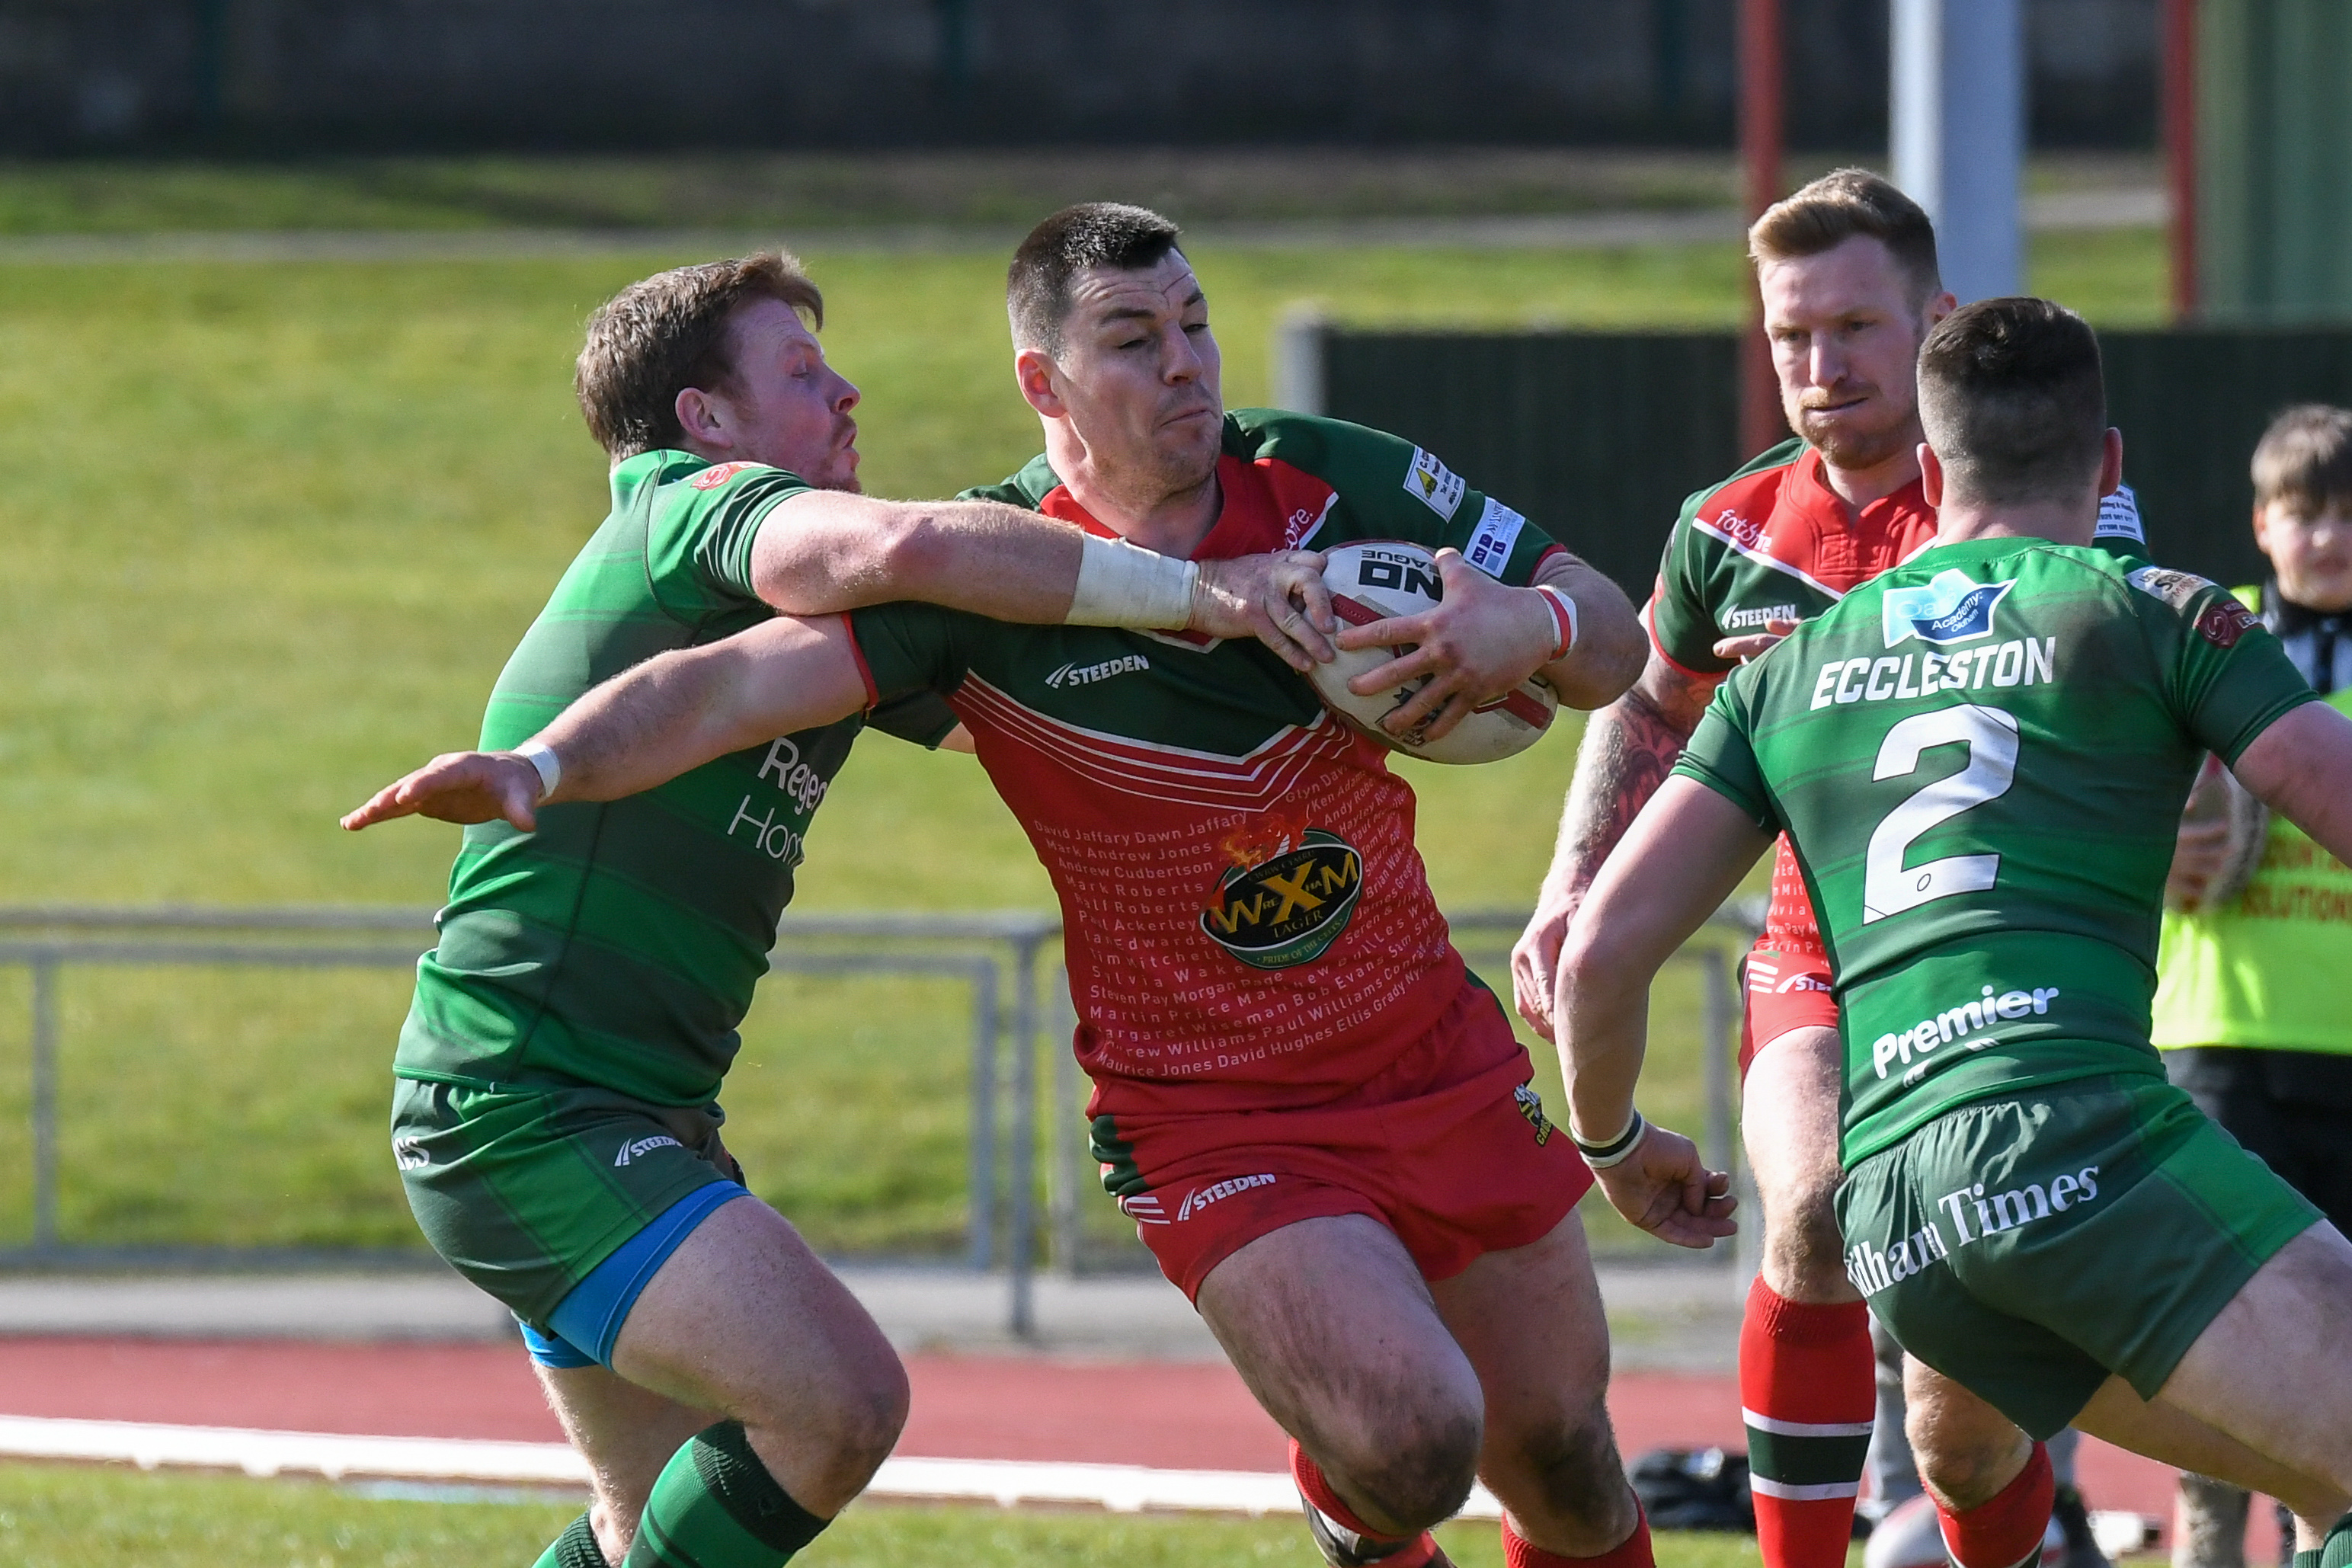 Preview: North Wales Crusaders v Oldham